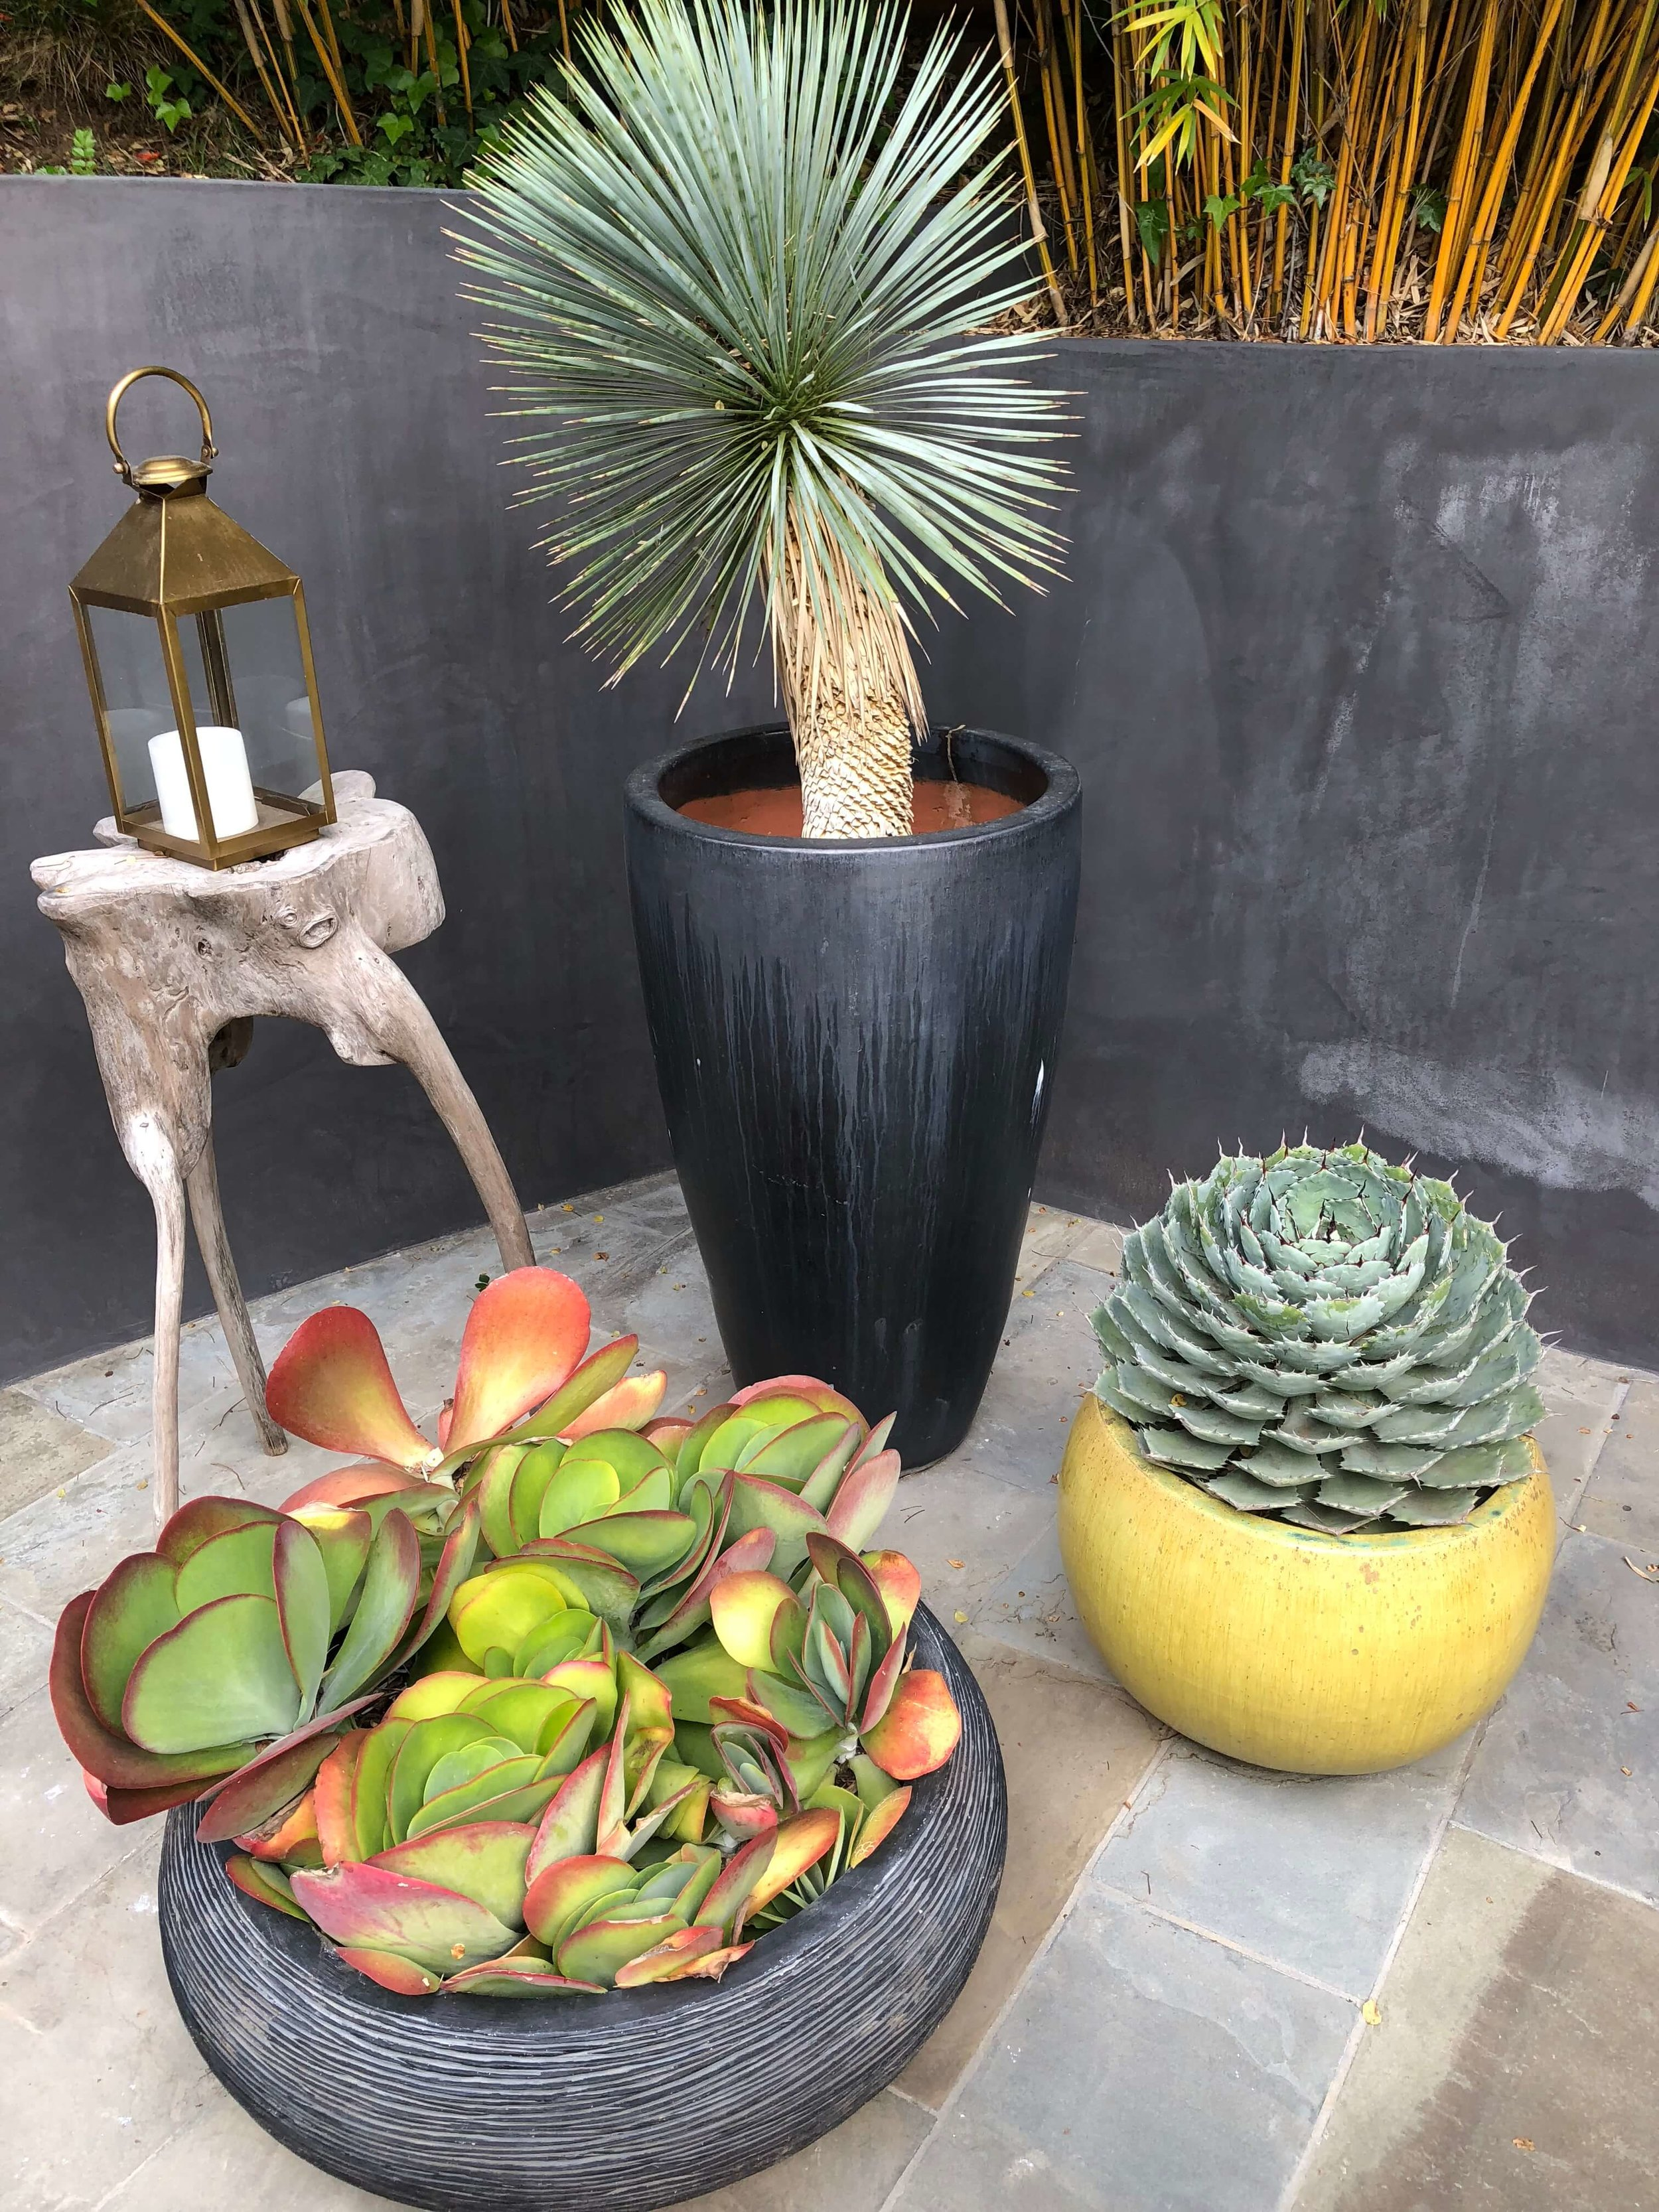 Succulents in pots in backyard patio - Assembledge+ Architects, Dwell on Design, Los Angeles, California #succulents #succulentcontainer #planters #backyardideas